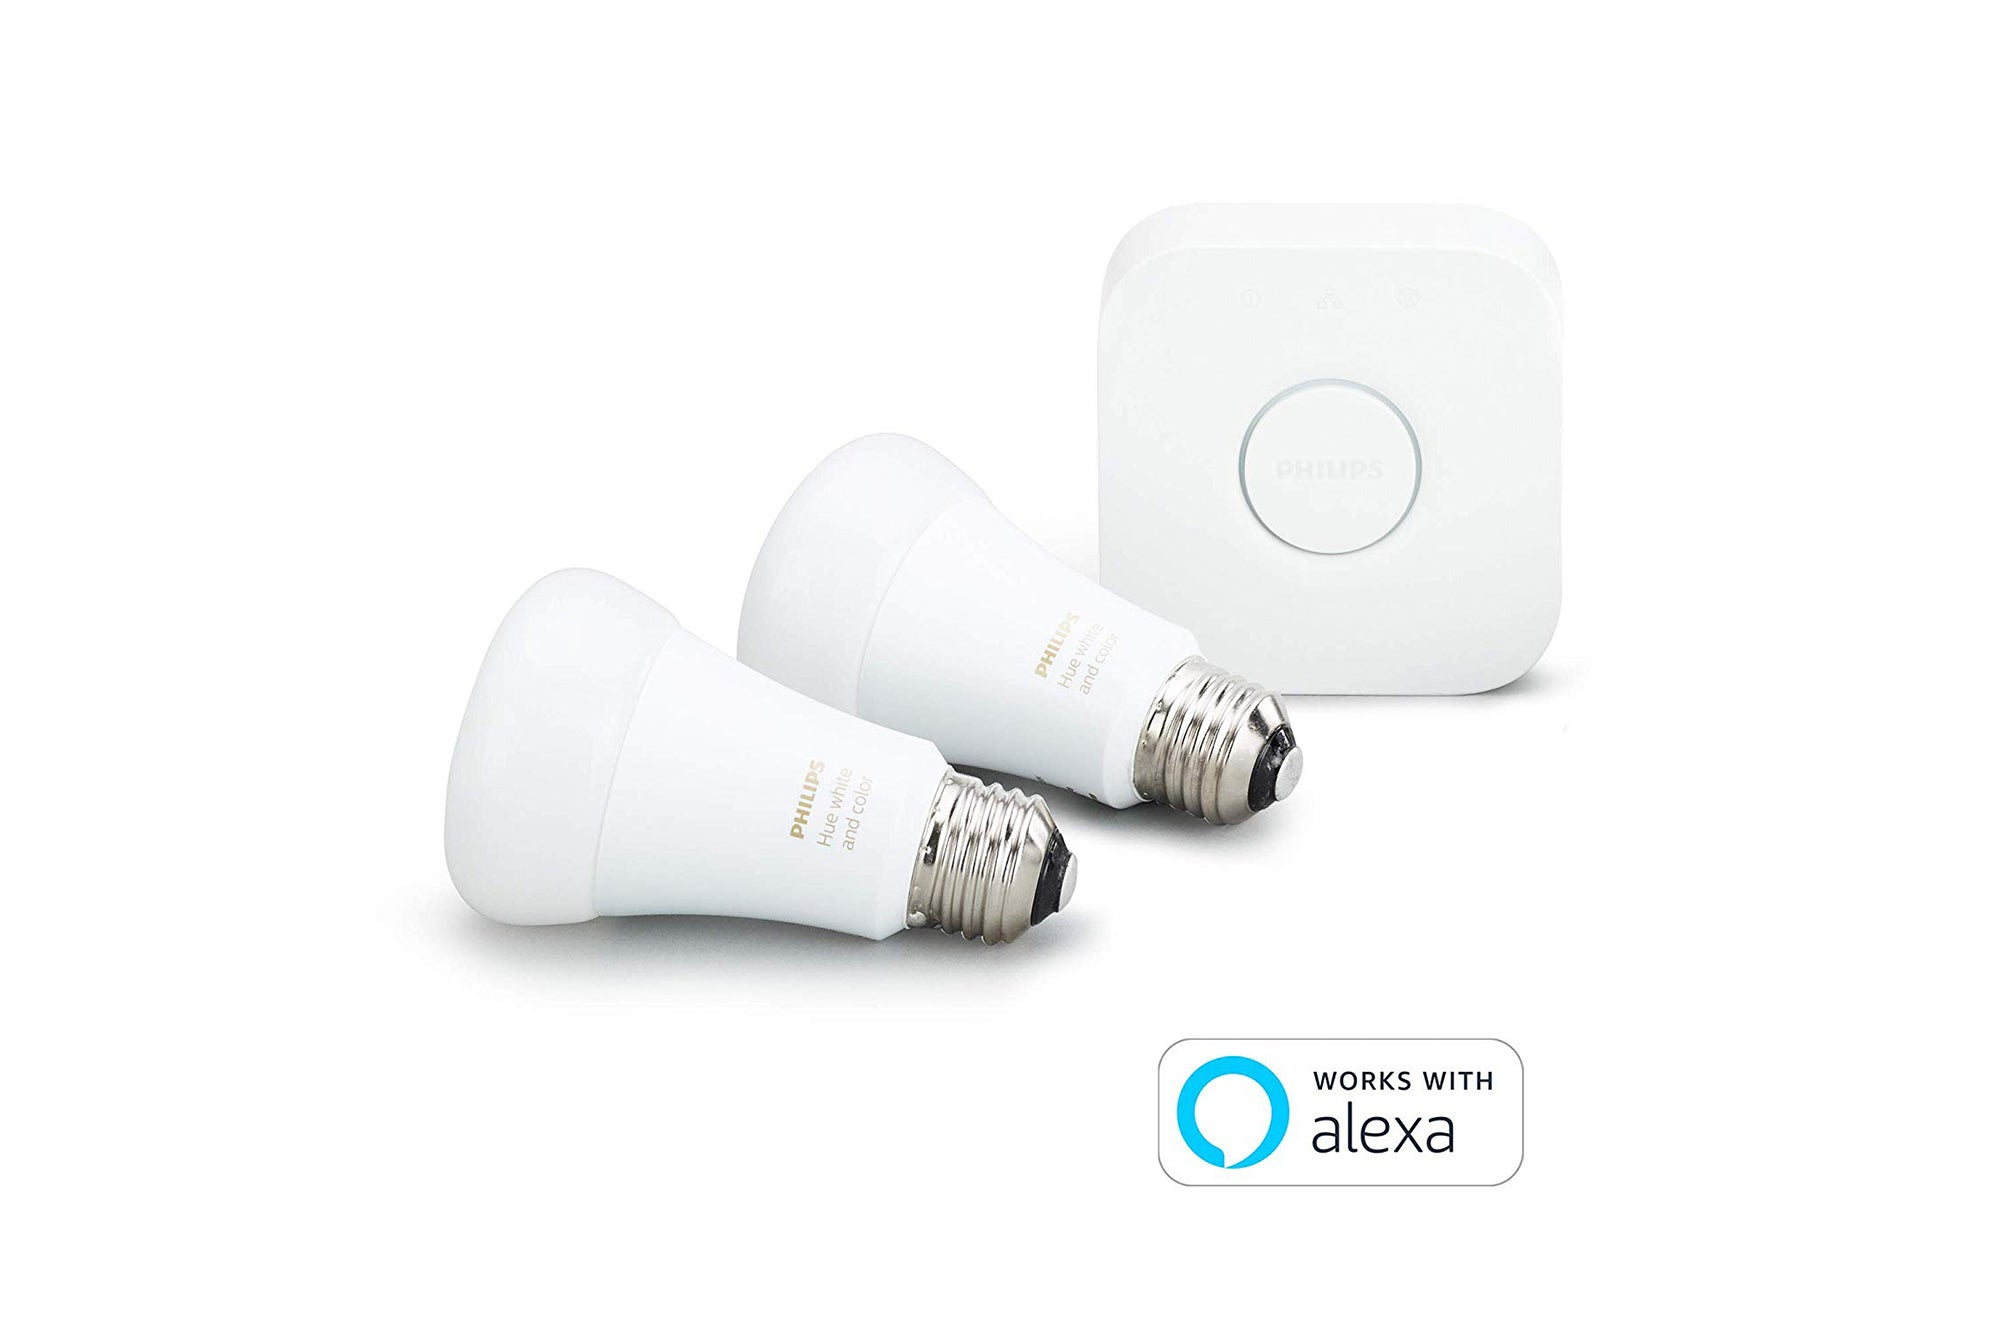 Philips Hue White and Color Ambiance A19 60W Equivalent LED Smart Light Bulb Starter Kit